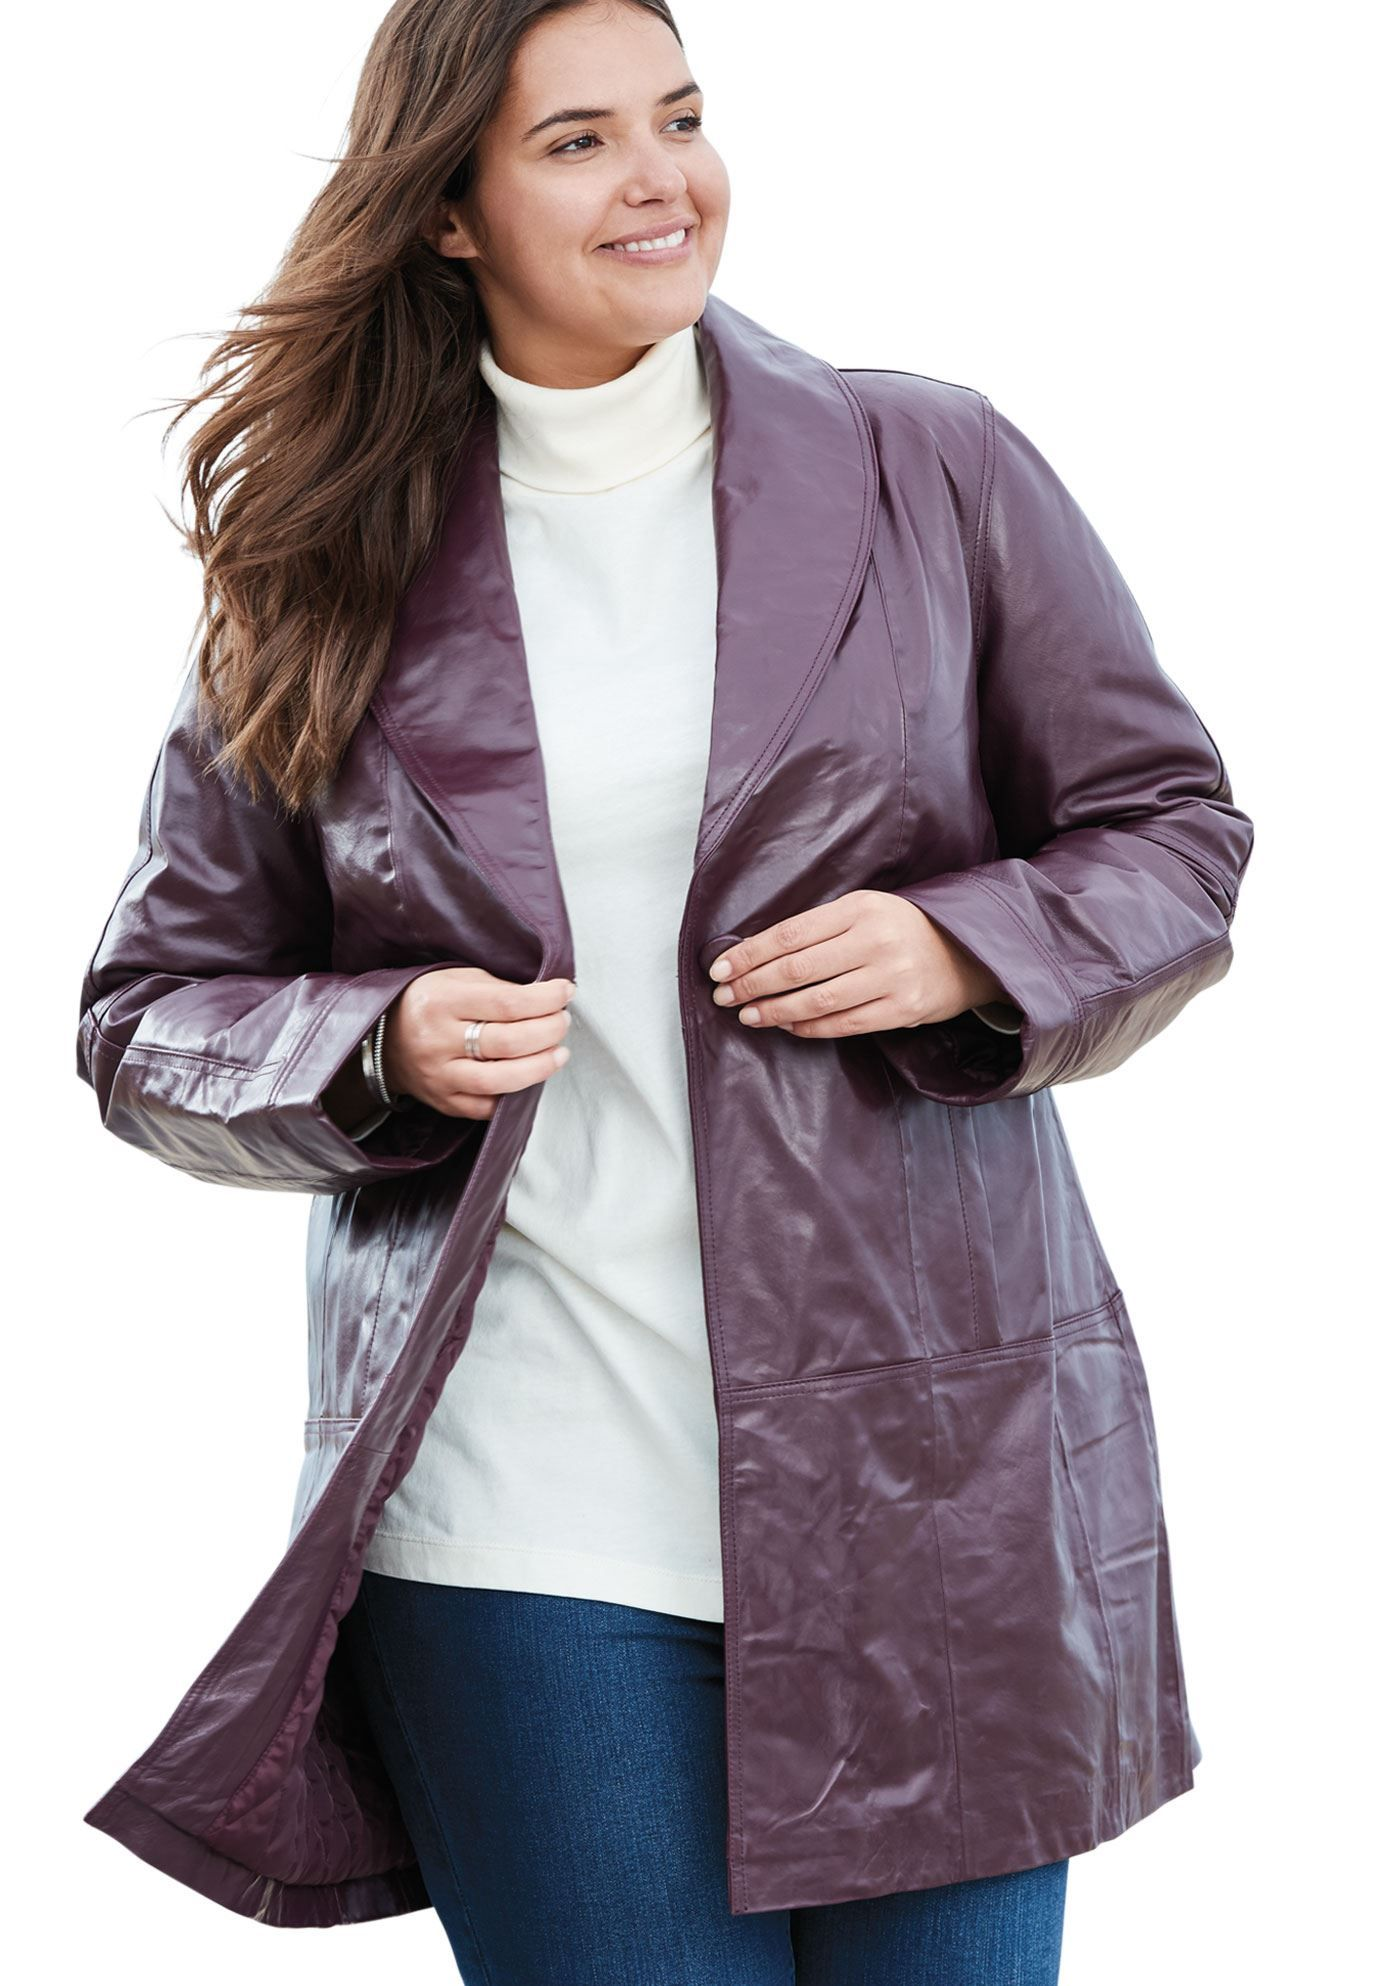 Coat, swing style in leather Women's Plus Size Clothing